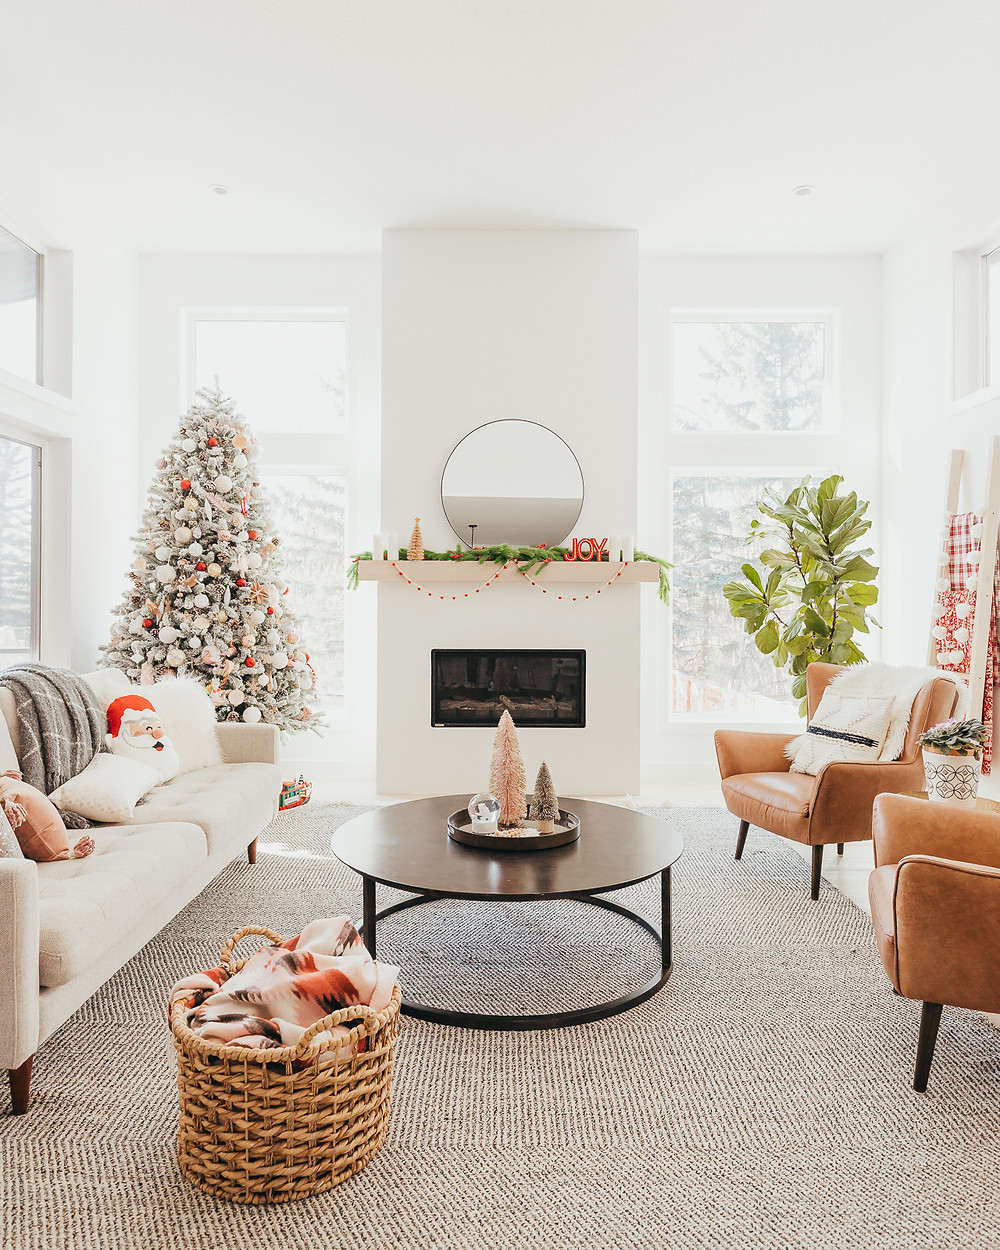 A modern scandinavian living room decorated for the Christmas holidays with a flocked christmas tree next to a white fireplace, some bottle brush trees on a black table and a grey sofa with some Santa pillows.